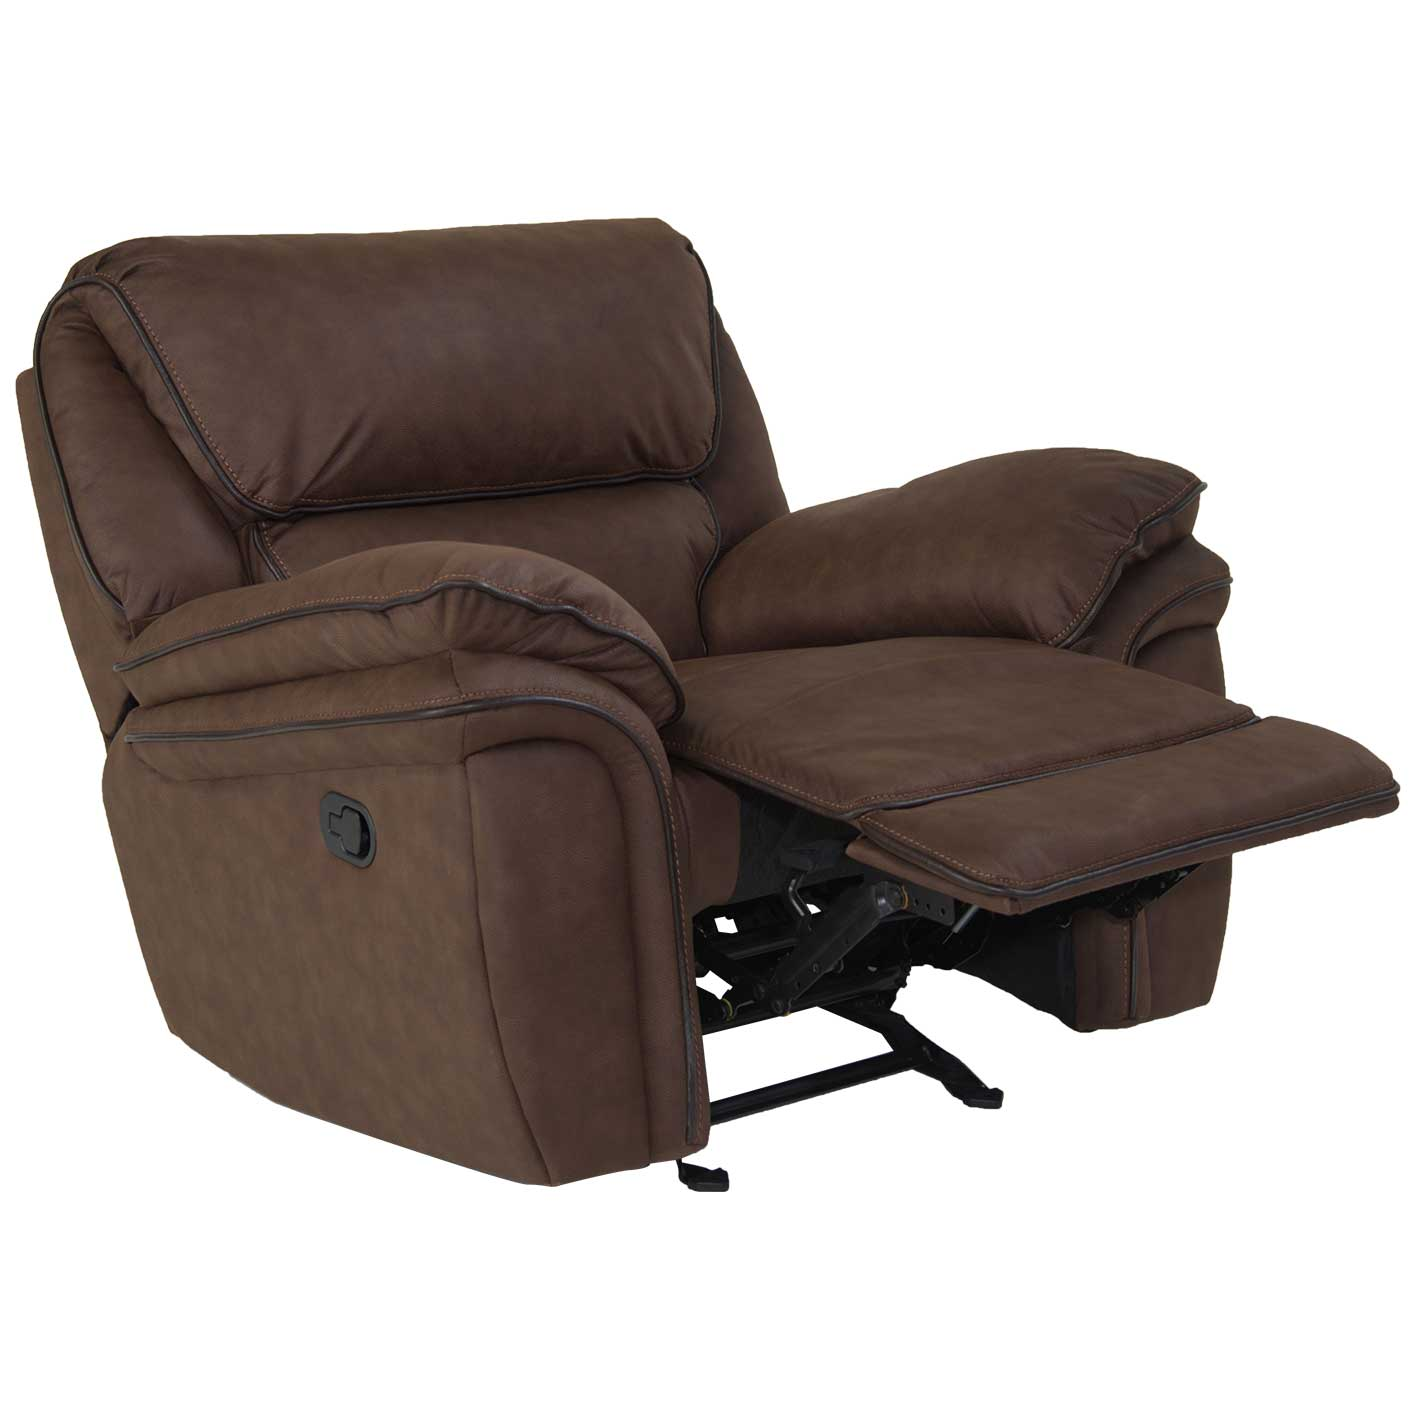 Recliner Lounge Zhej07 Recliner Lounge Suite Furniture Liquidation Warehouse